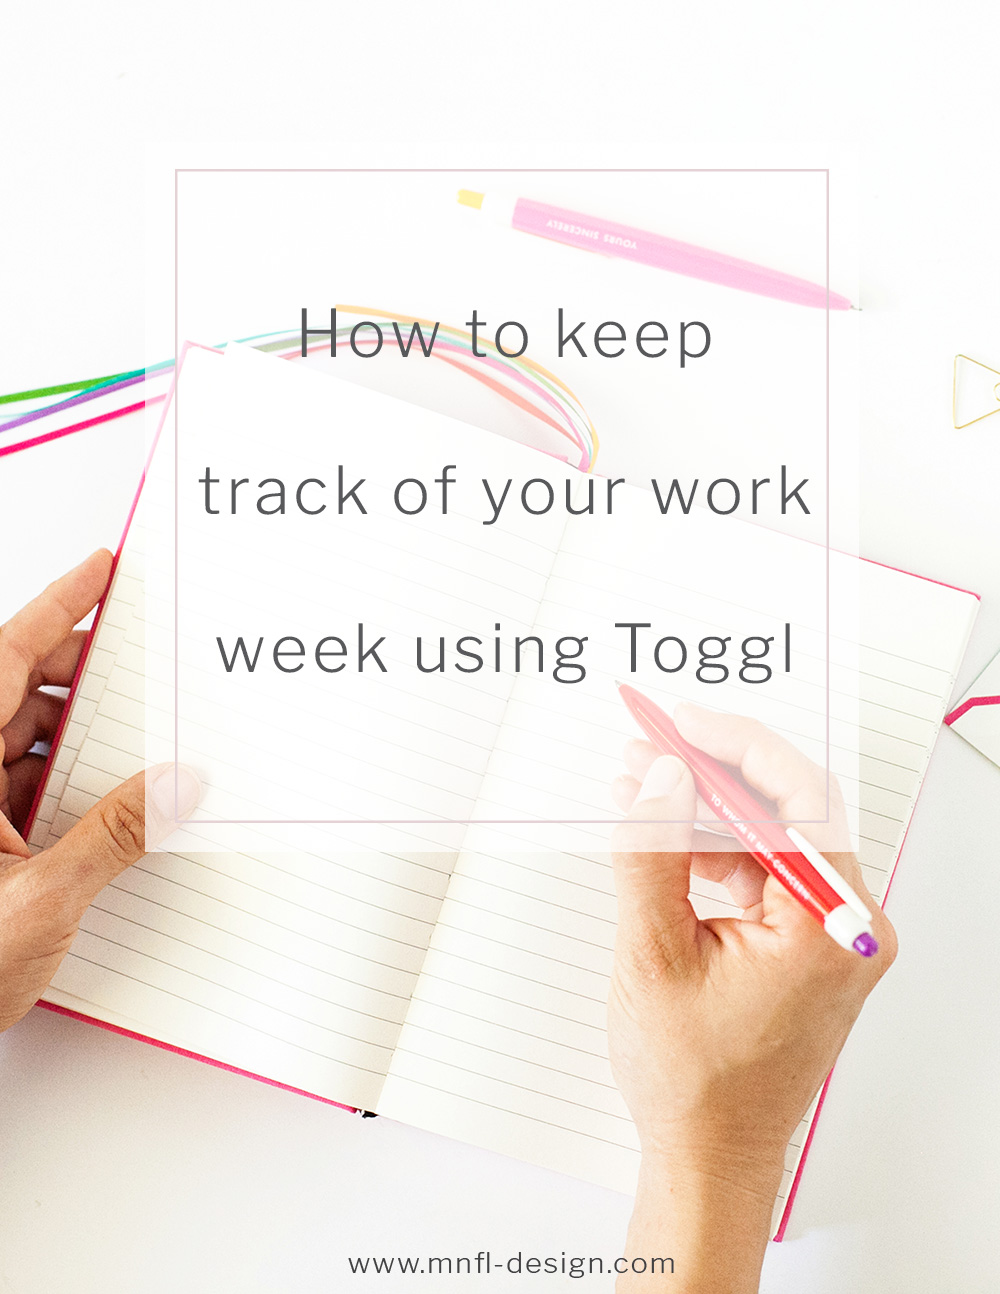 How-to-organize-your-work-week-using-toggl-2.jpg